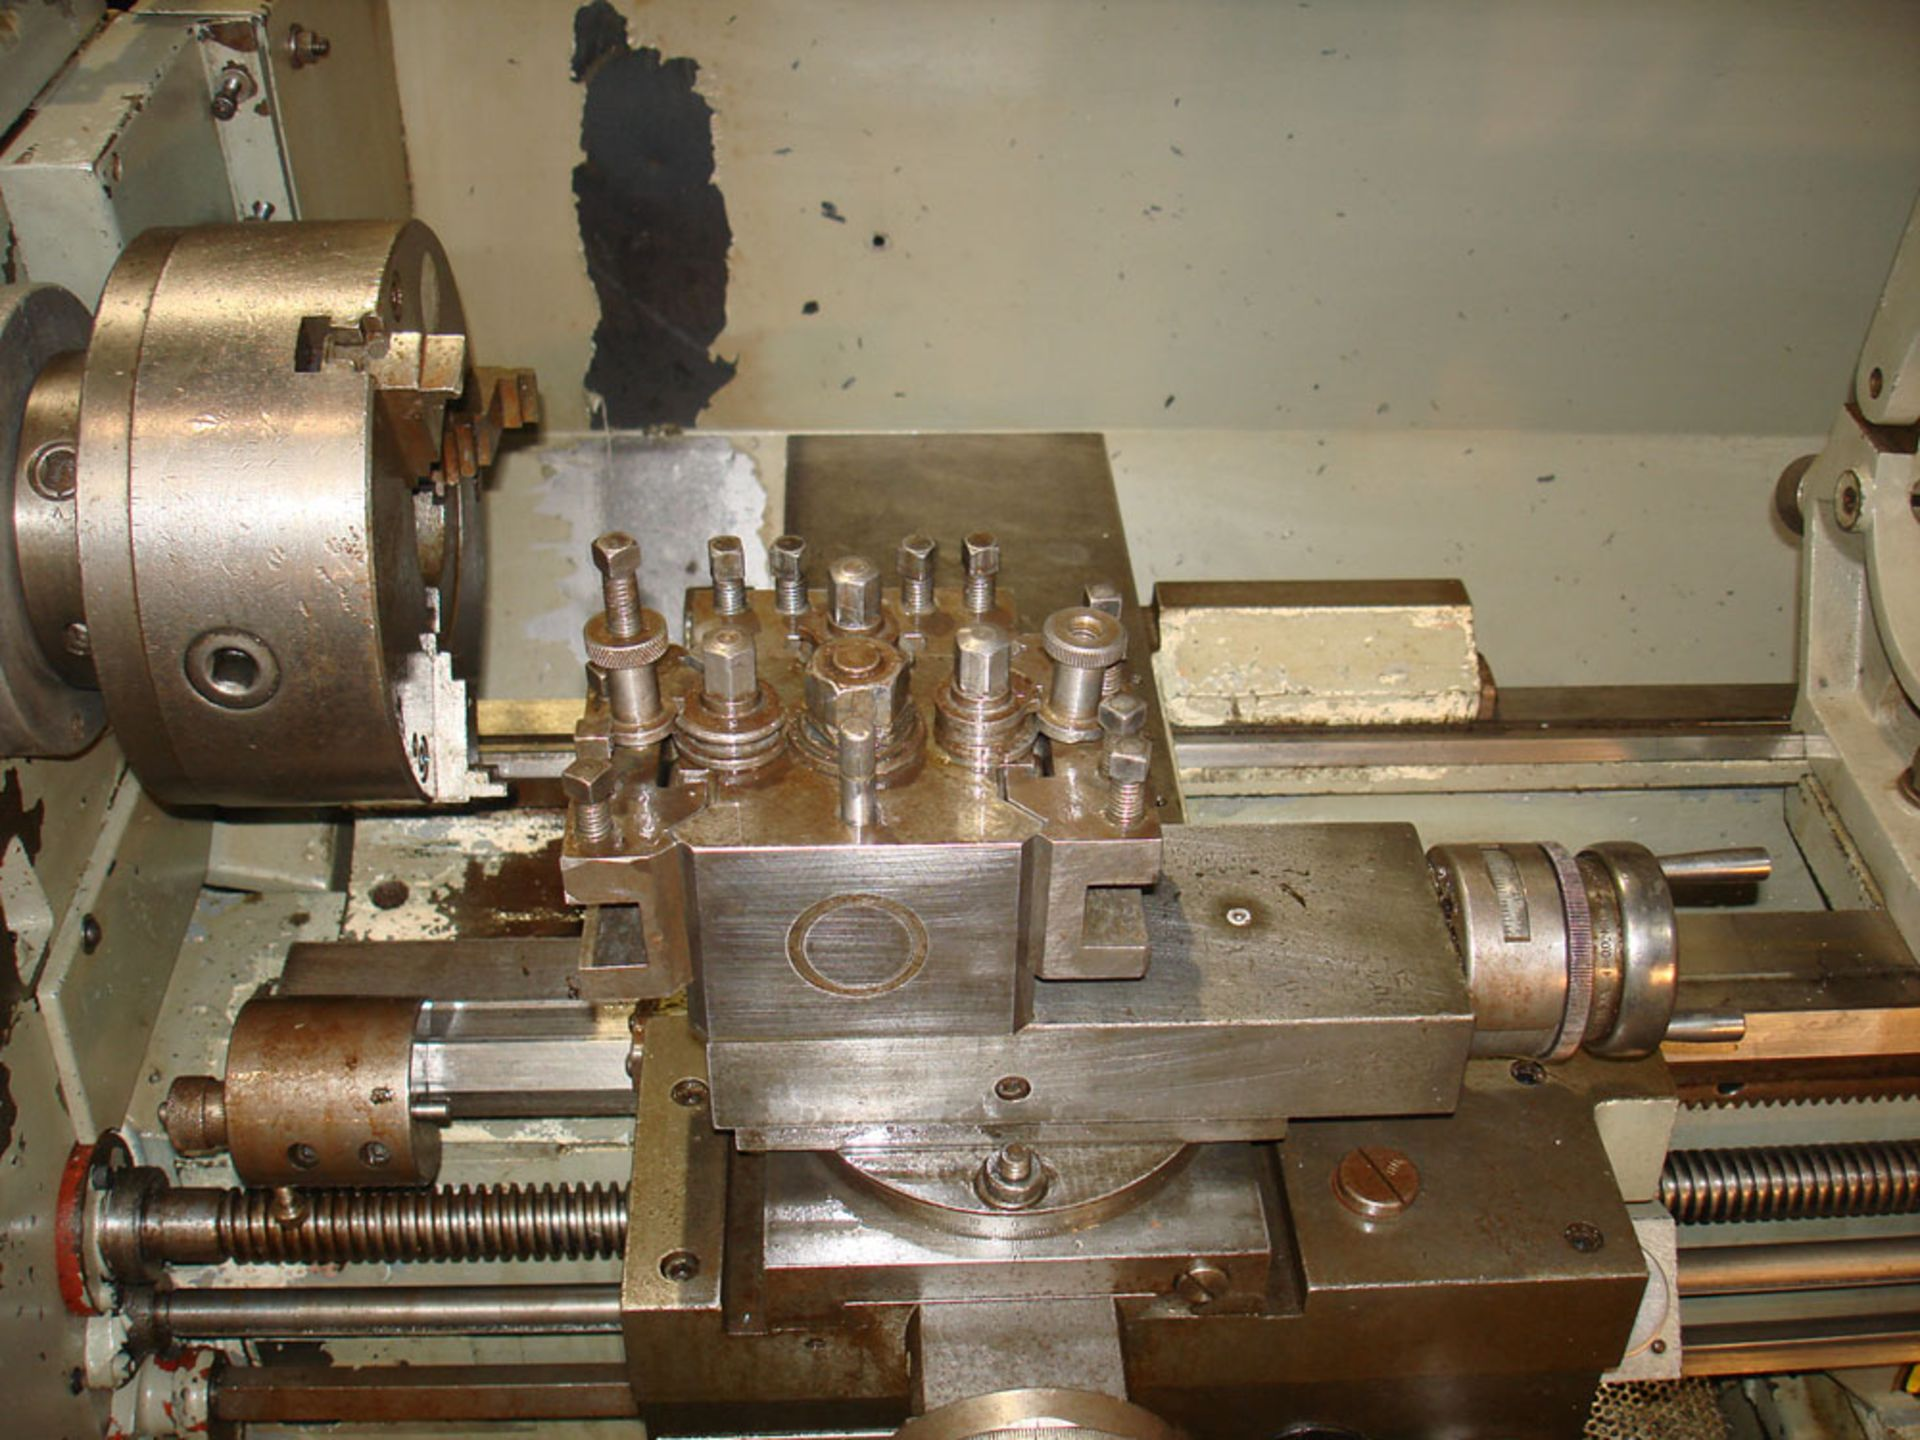 Colchester Master 2500 Gap Bed Centre Lathe. Swing 335mm x 635mm. With Chuck & Steady. - Image 5 of 5